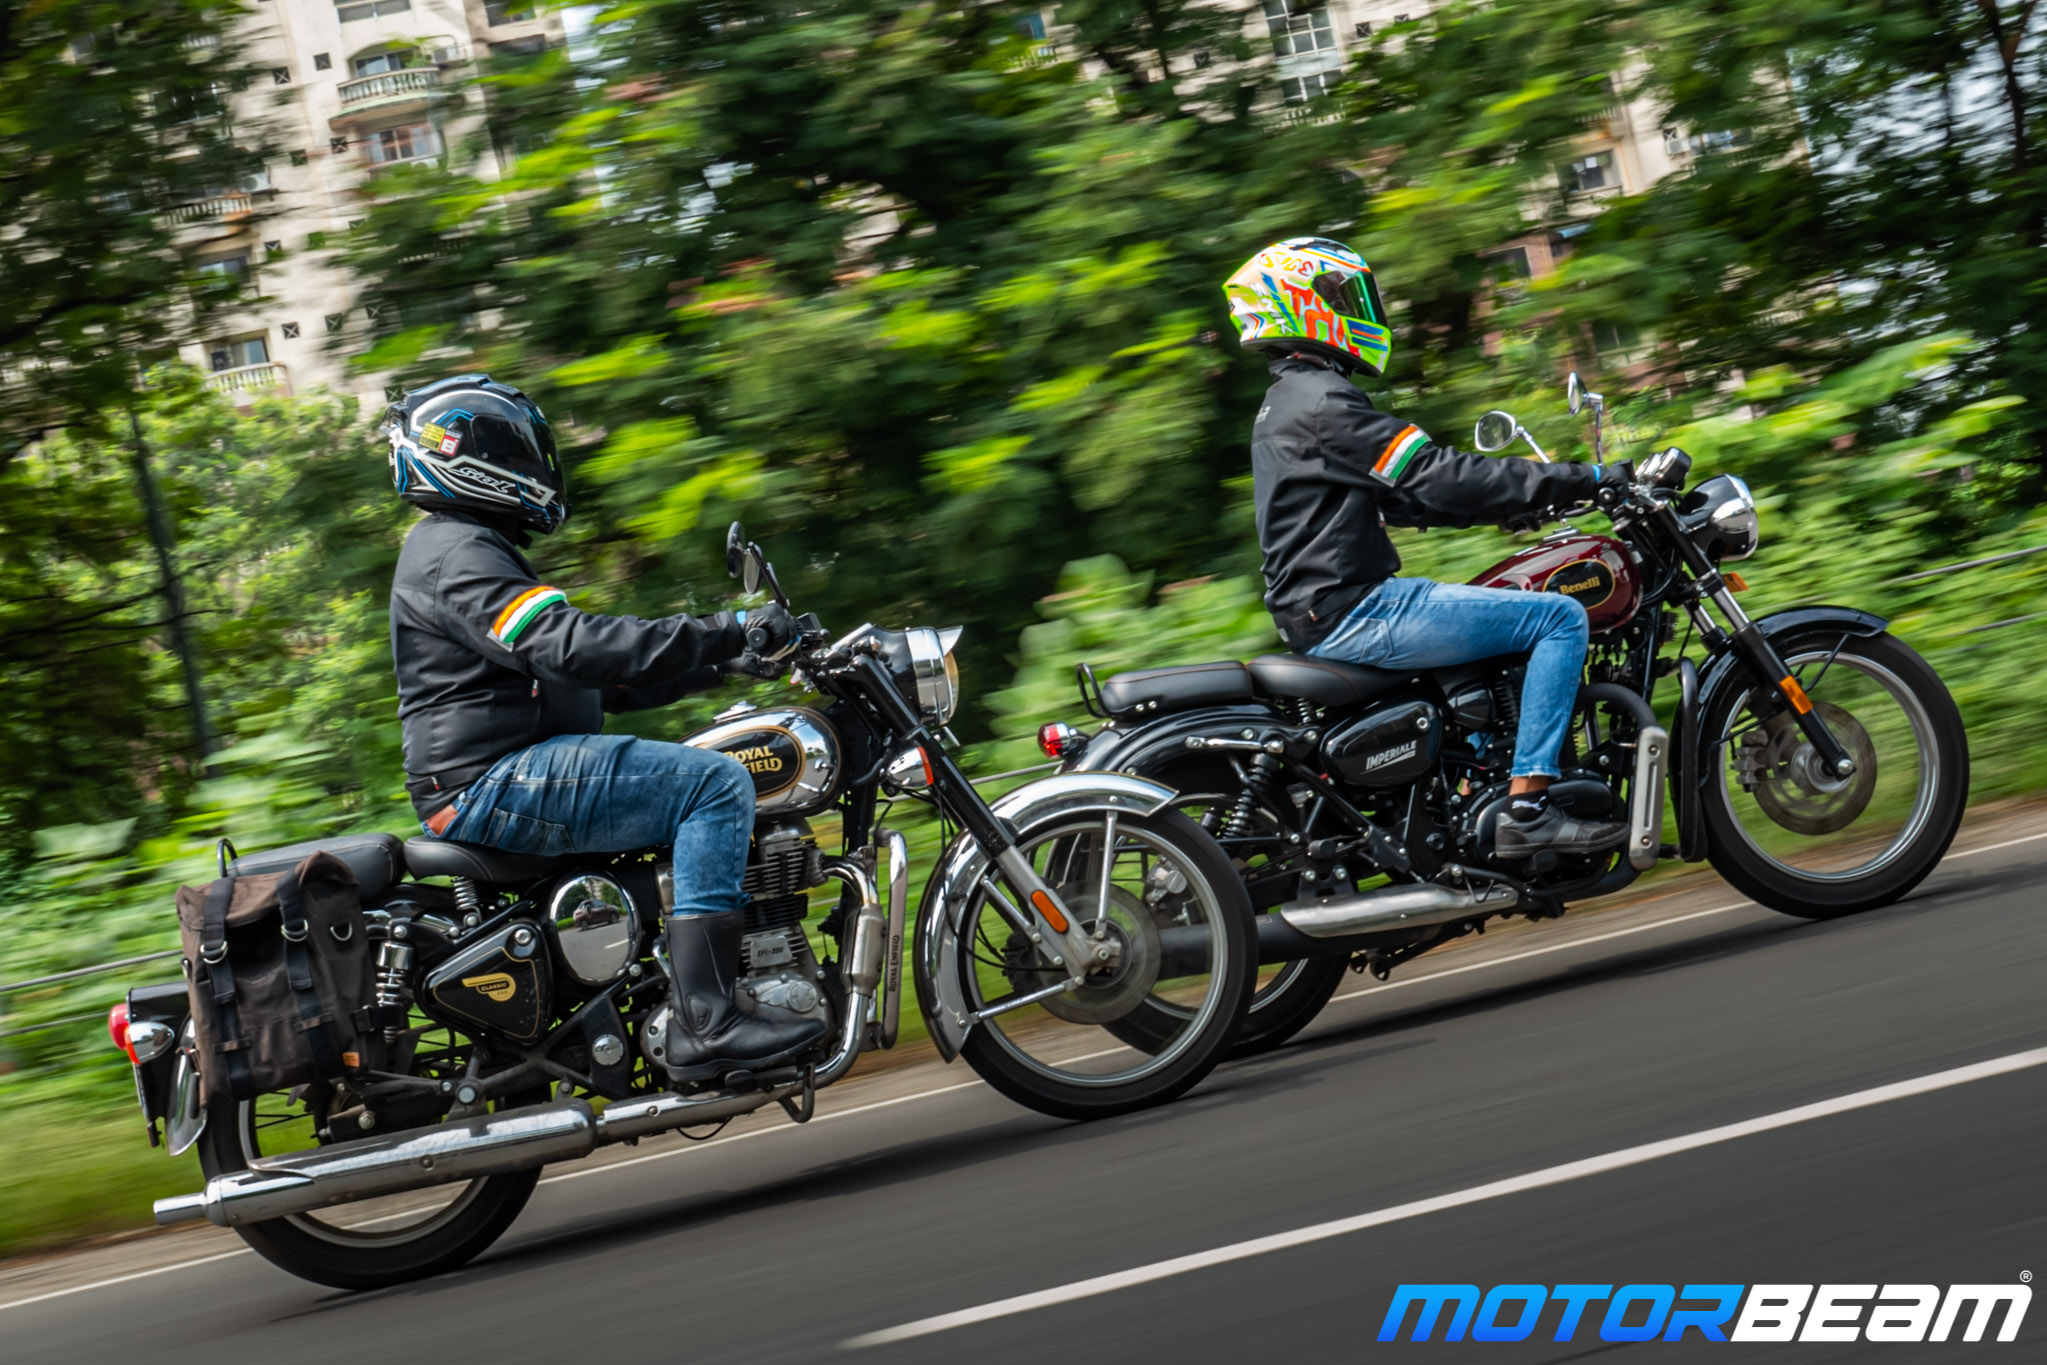 Benelli Imperiale 400 vs Royal Enfield Classic 350 Comparison Review 2